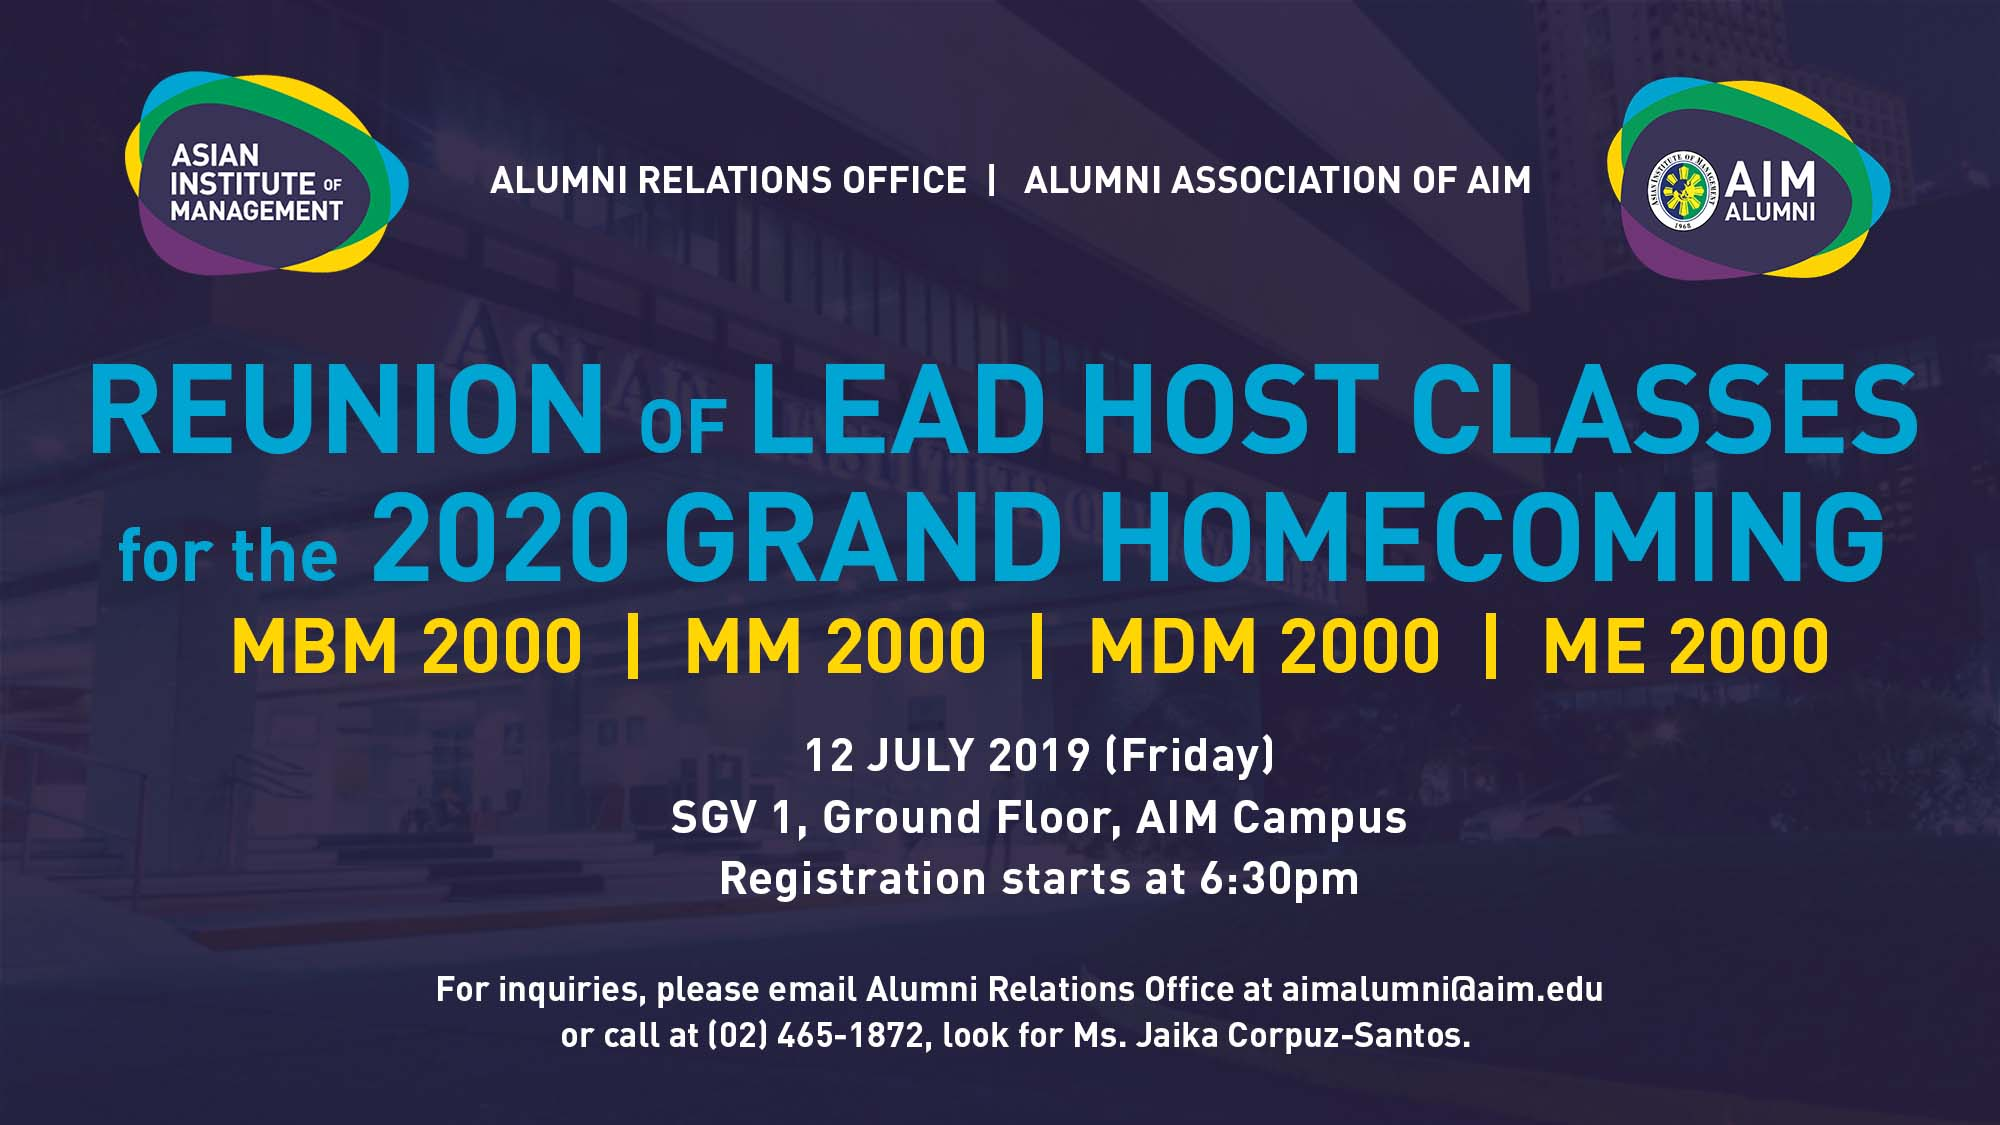 Reunion of Lead Host Classes for the 2020 Grand Homecoming